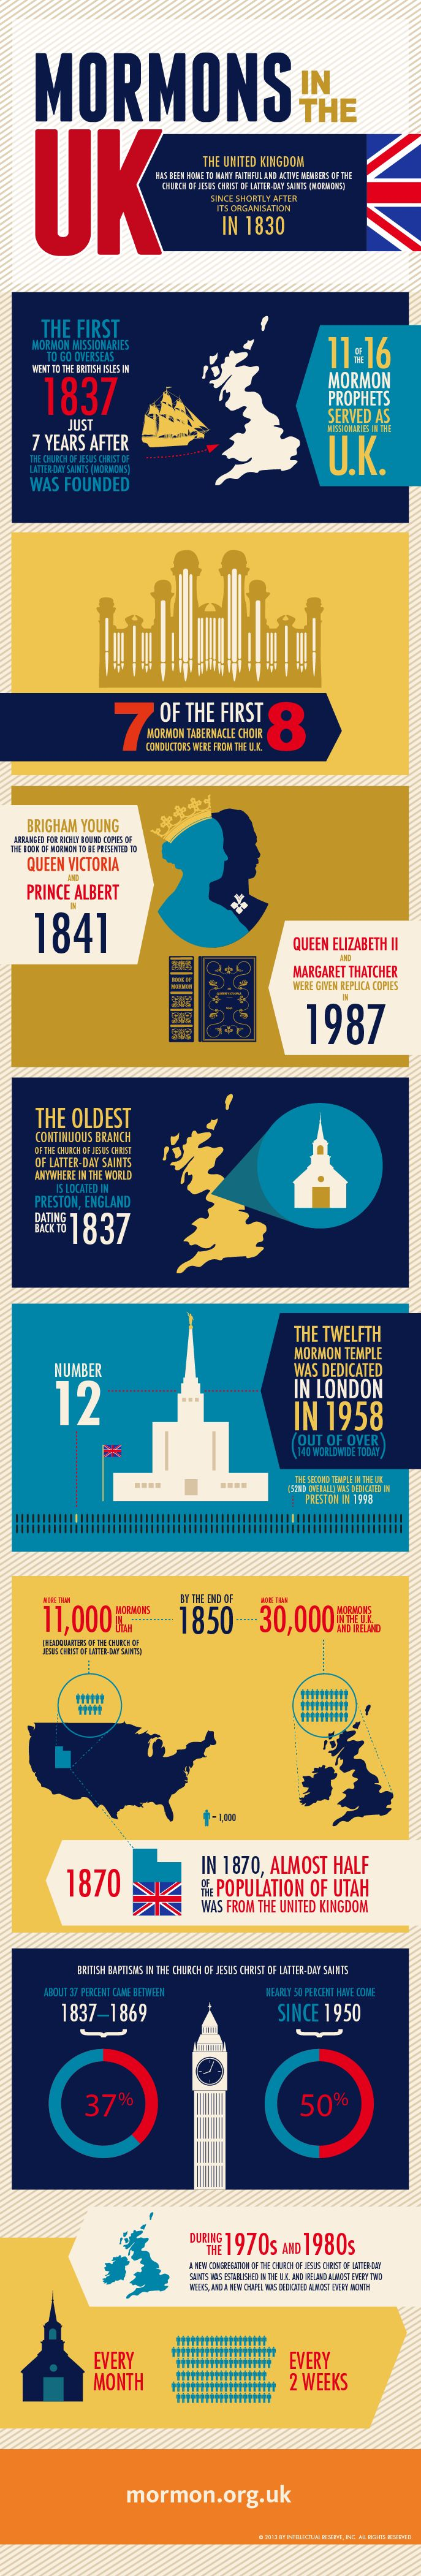 Mormons/LDS in the UK - an infographic where I'm sure you'll learn a few things. I found myself saying, huh, cool a lot!